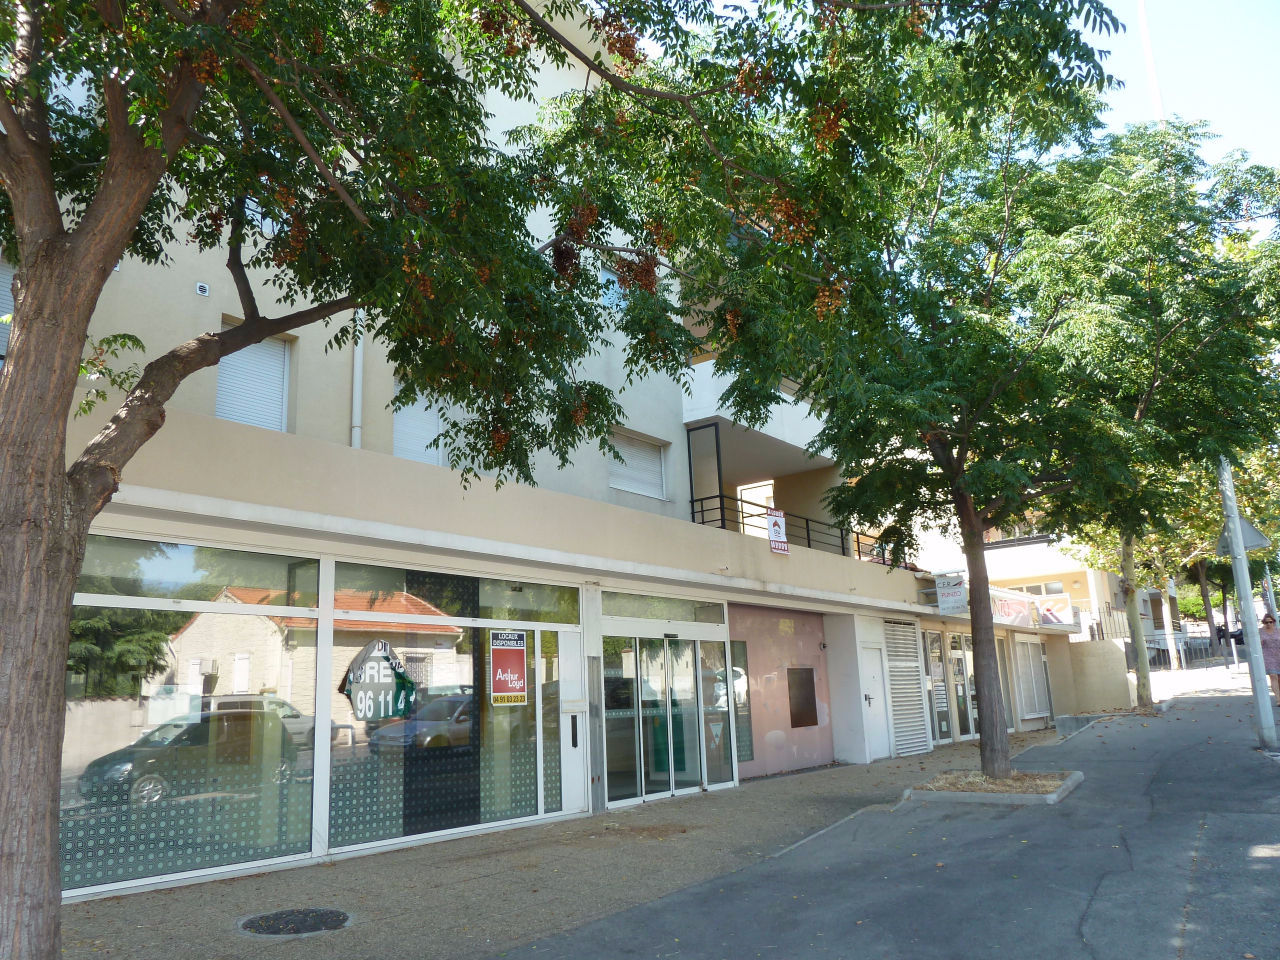 Vente Parking/box MARSEILLE MARSEILLE 13012